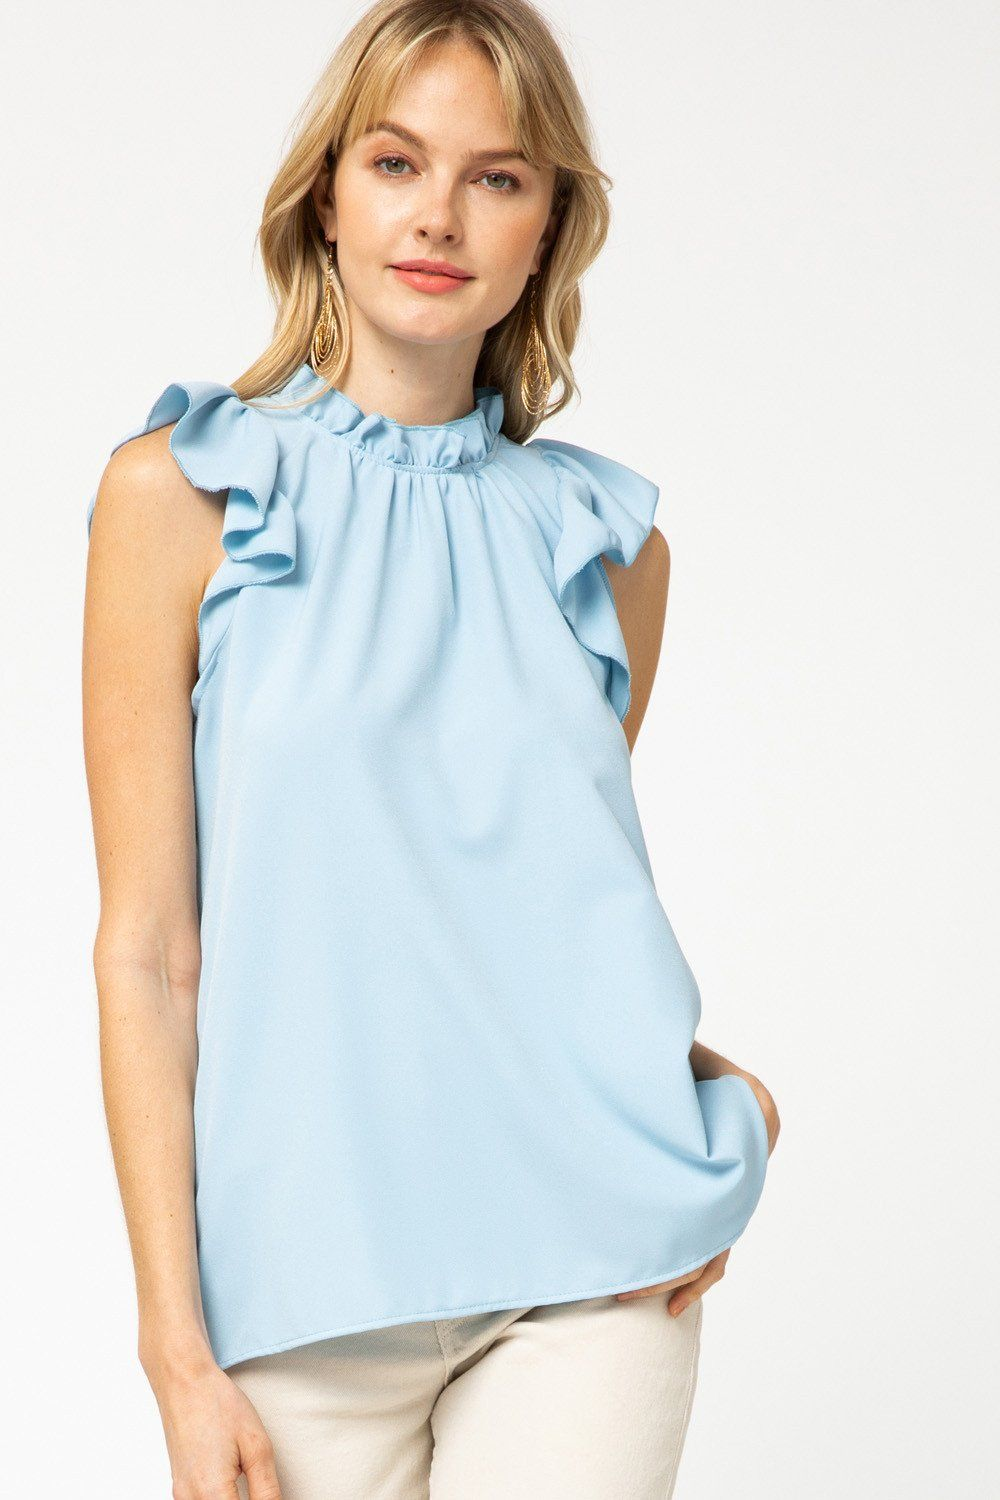 Ladies Who Lunch Blue Top - Caroline Hill